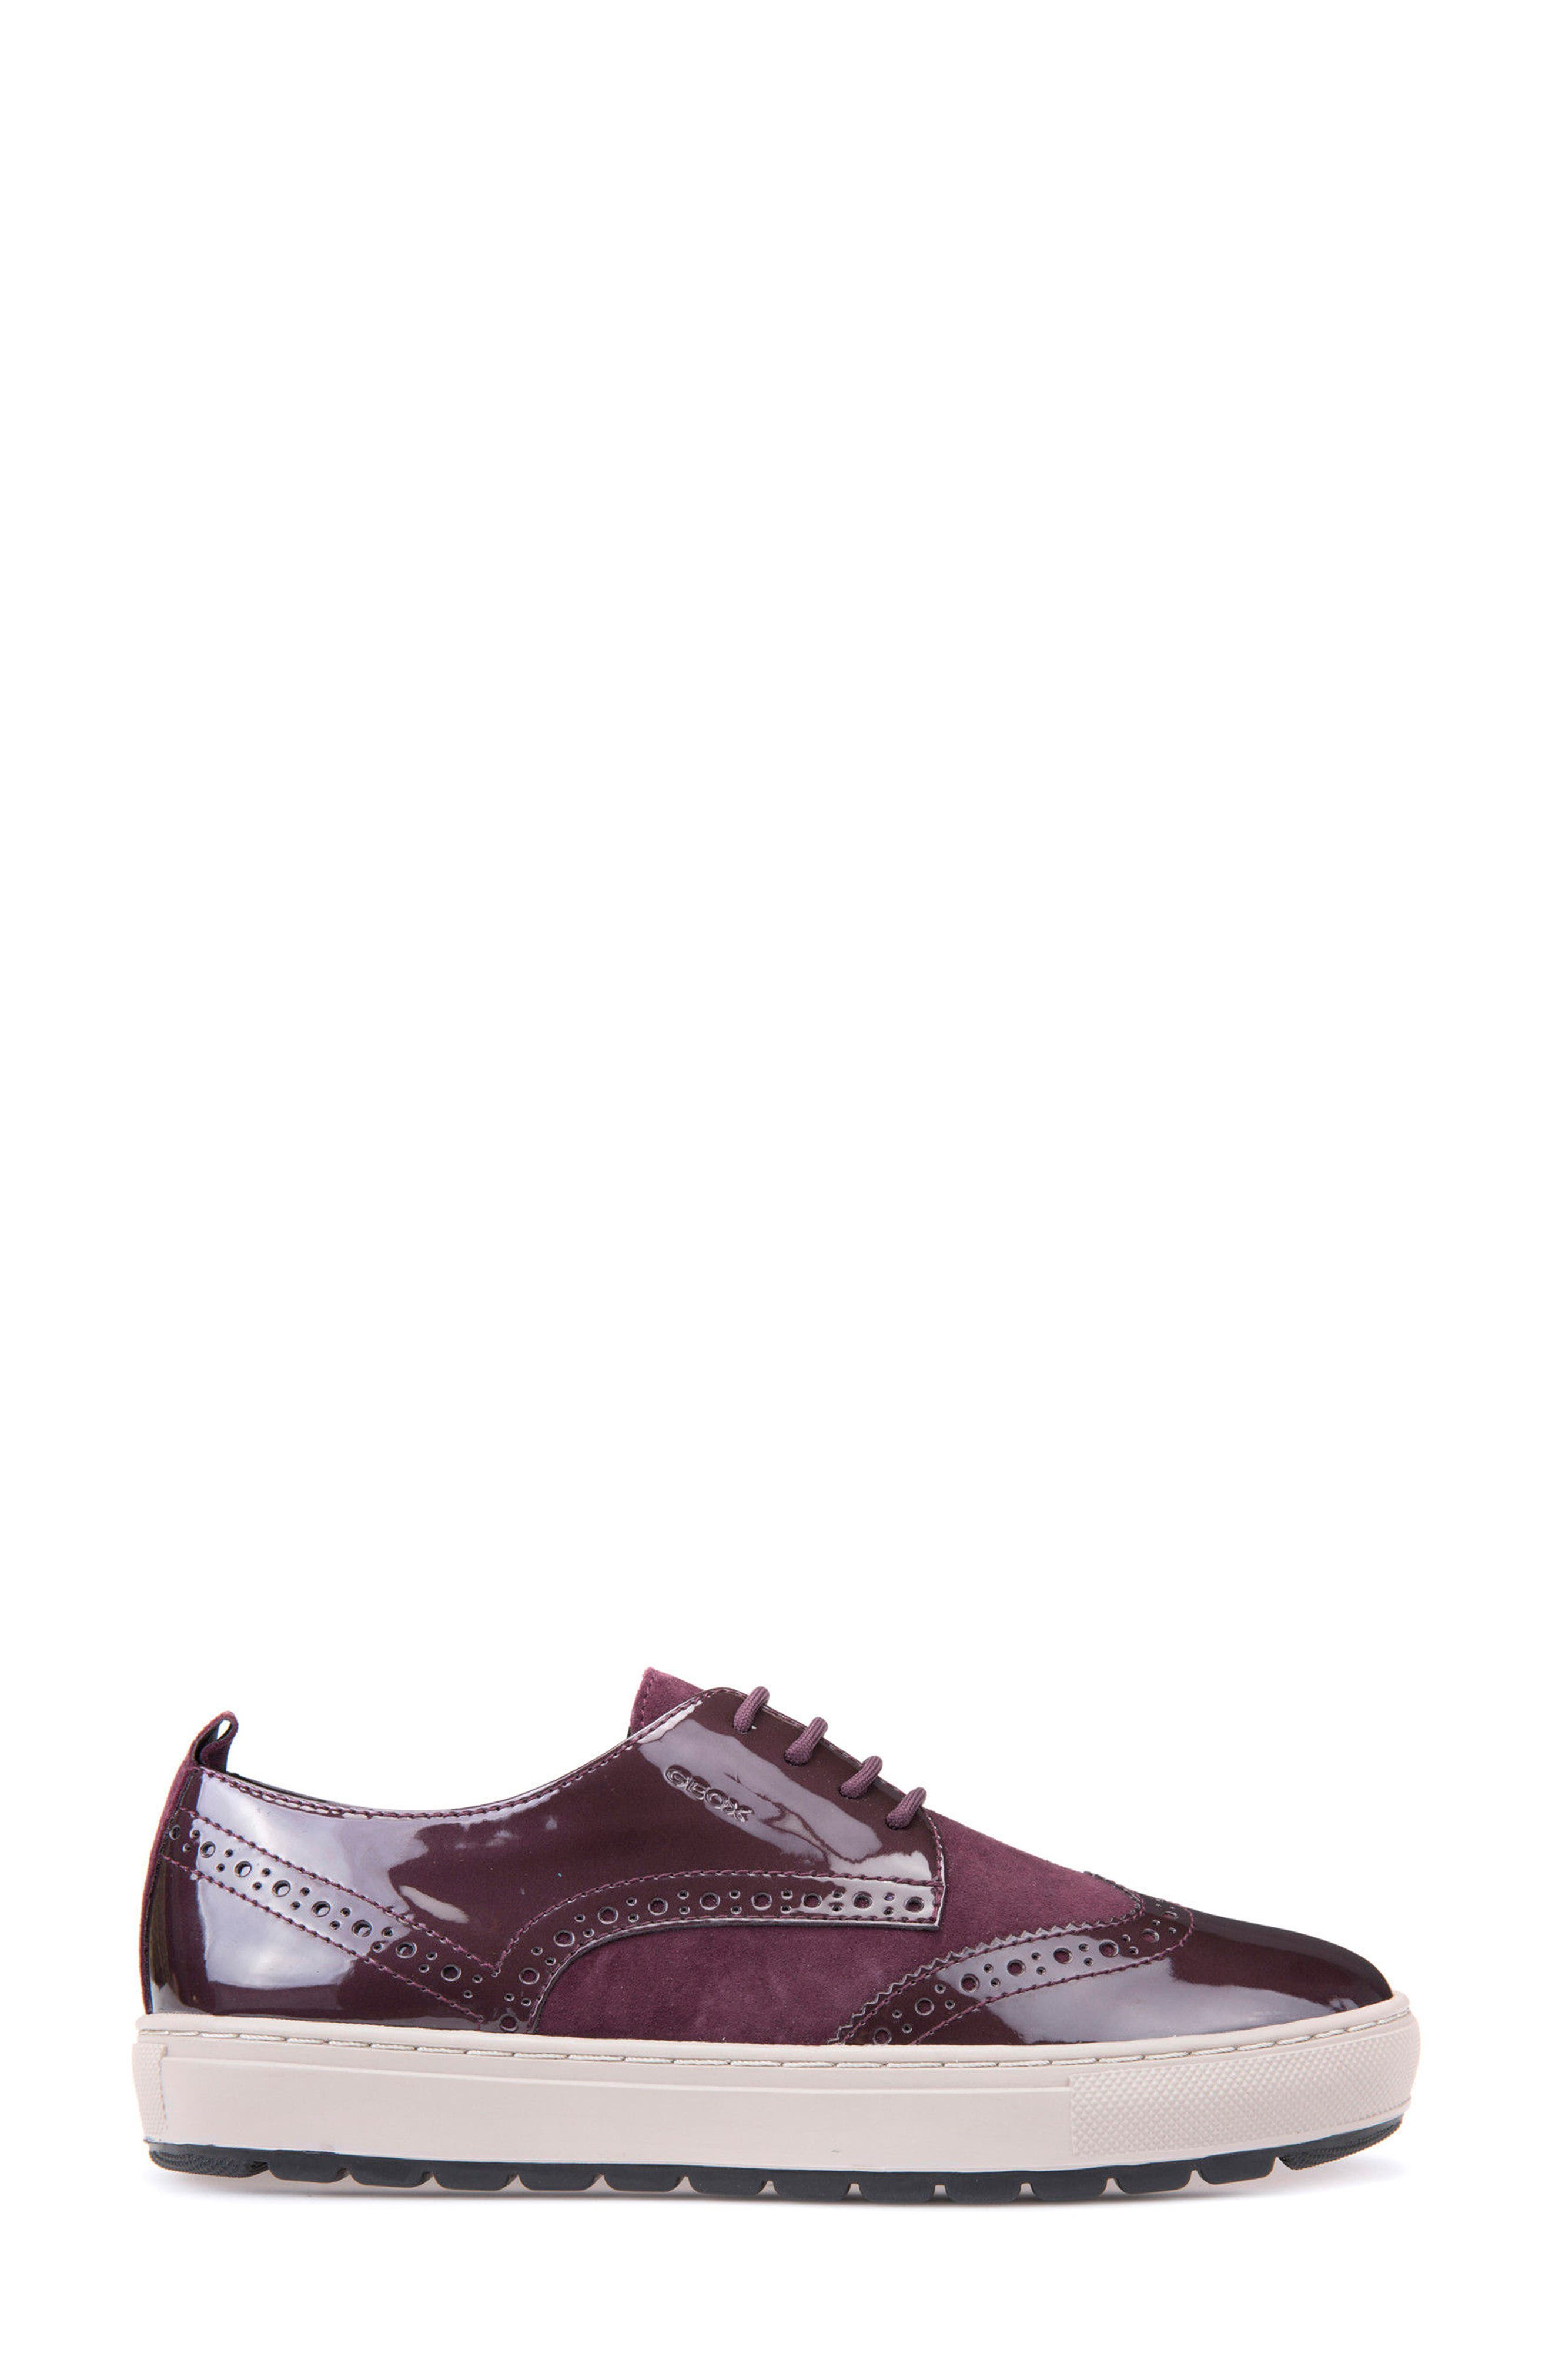 Alternate Image 3  - Geox Breeda Oxford Sneaker (Women)